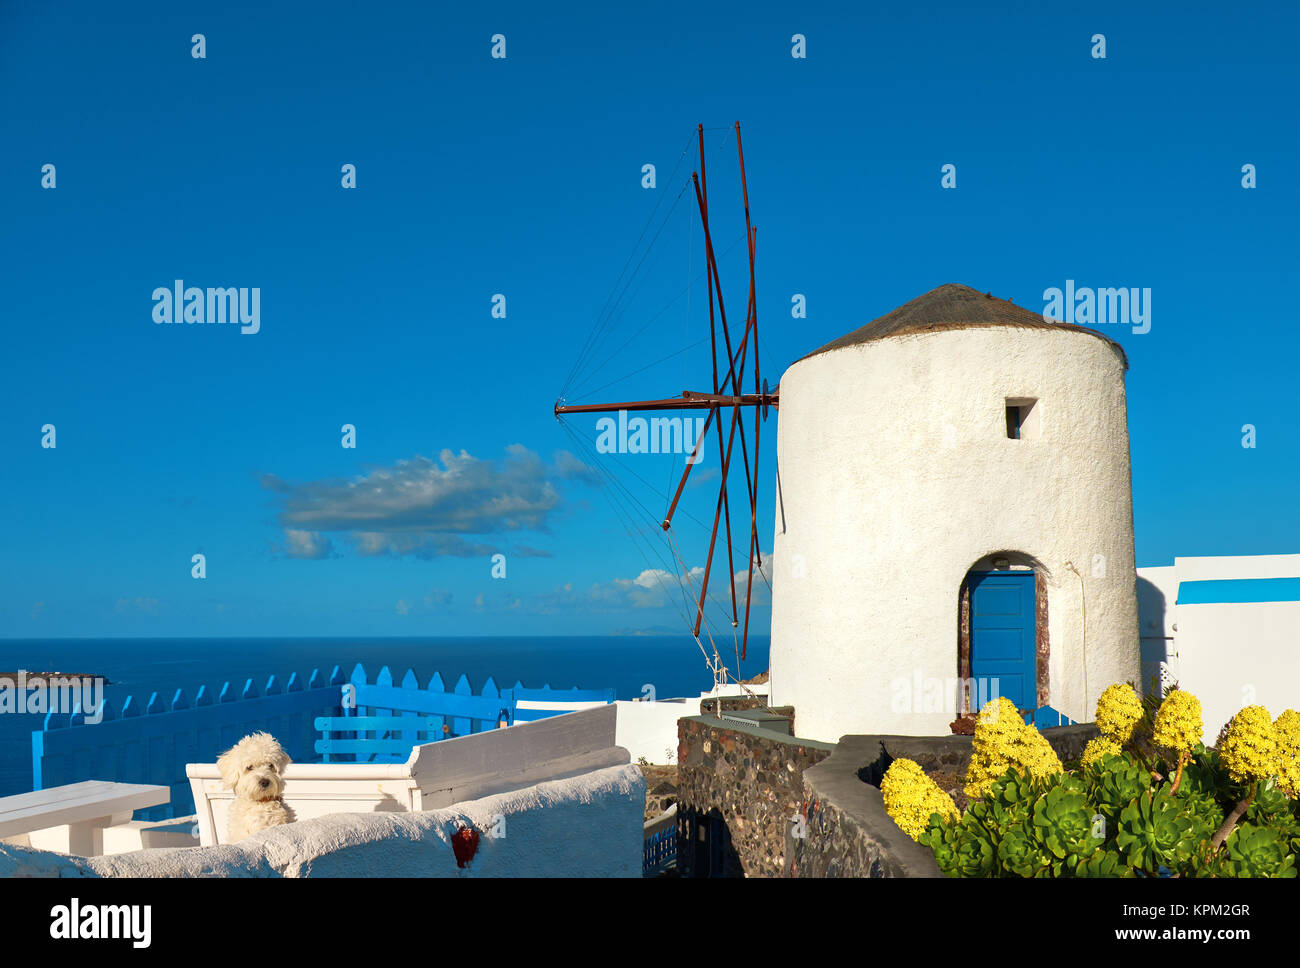 Curious white lapdog on white terrase by historical windmill in Oia, Santorini, Greece - Stock Image